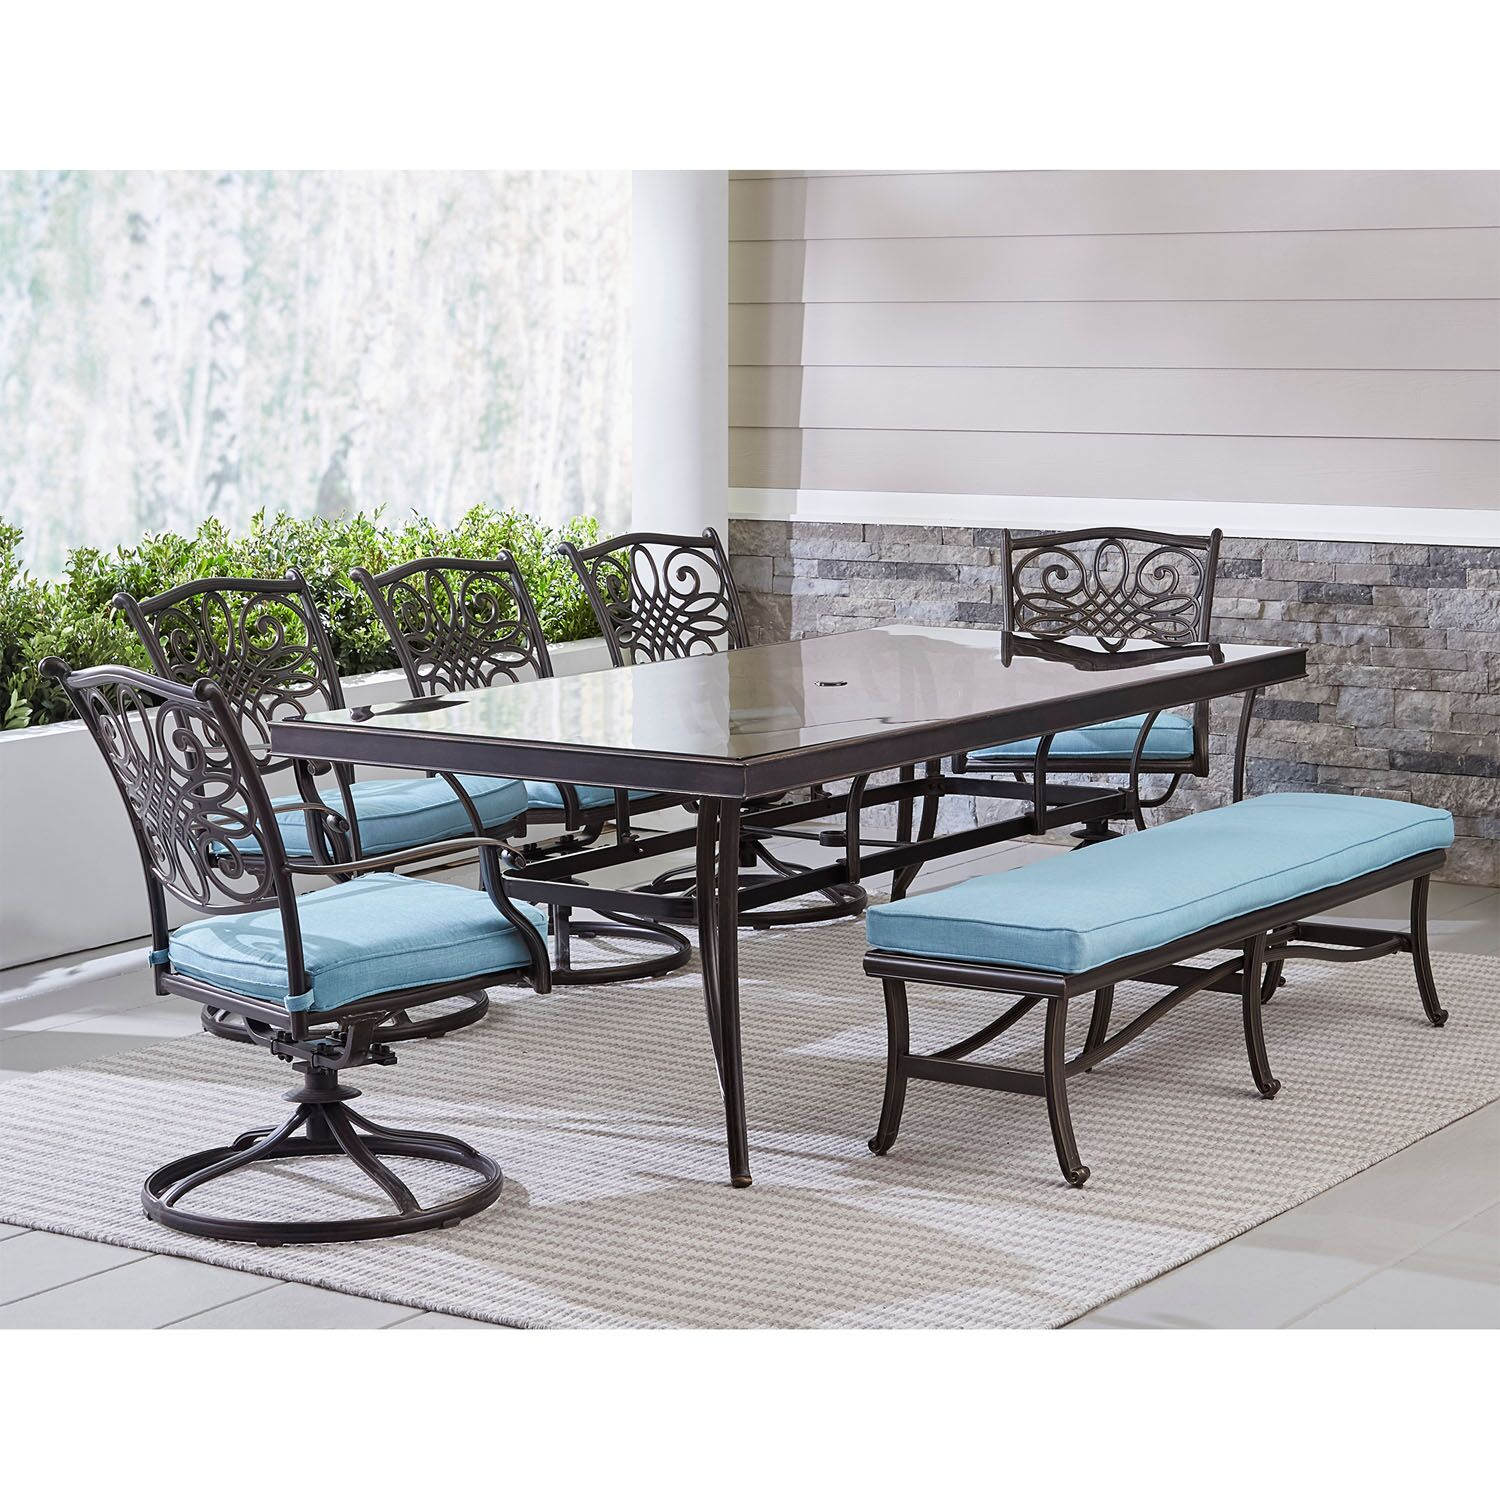 Lauritsen Outdoor 7 Piece Dining Set